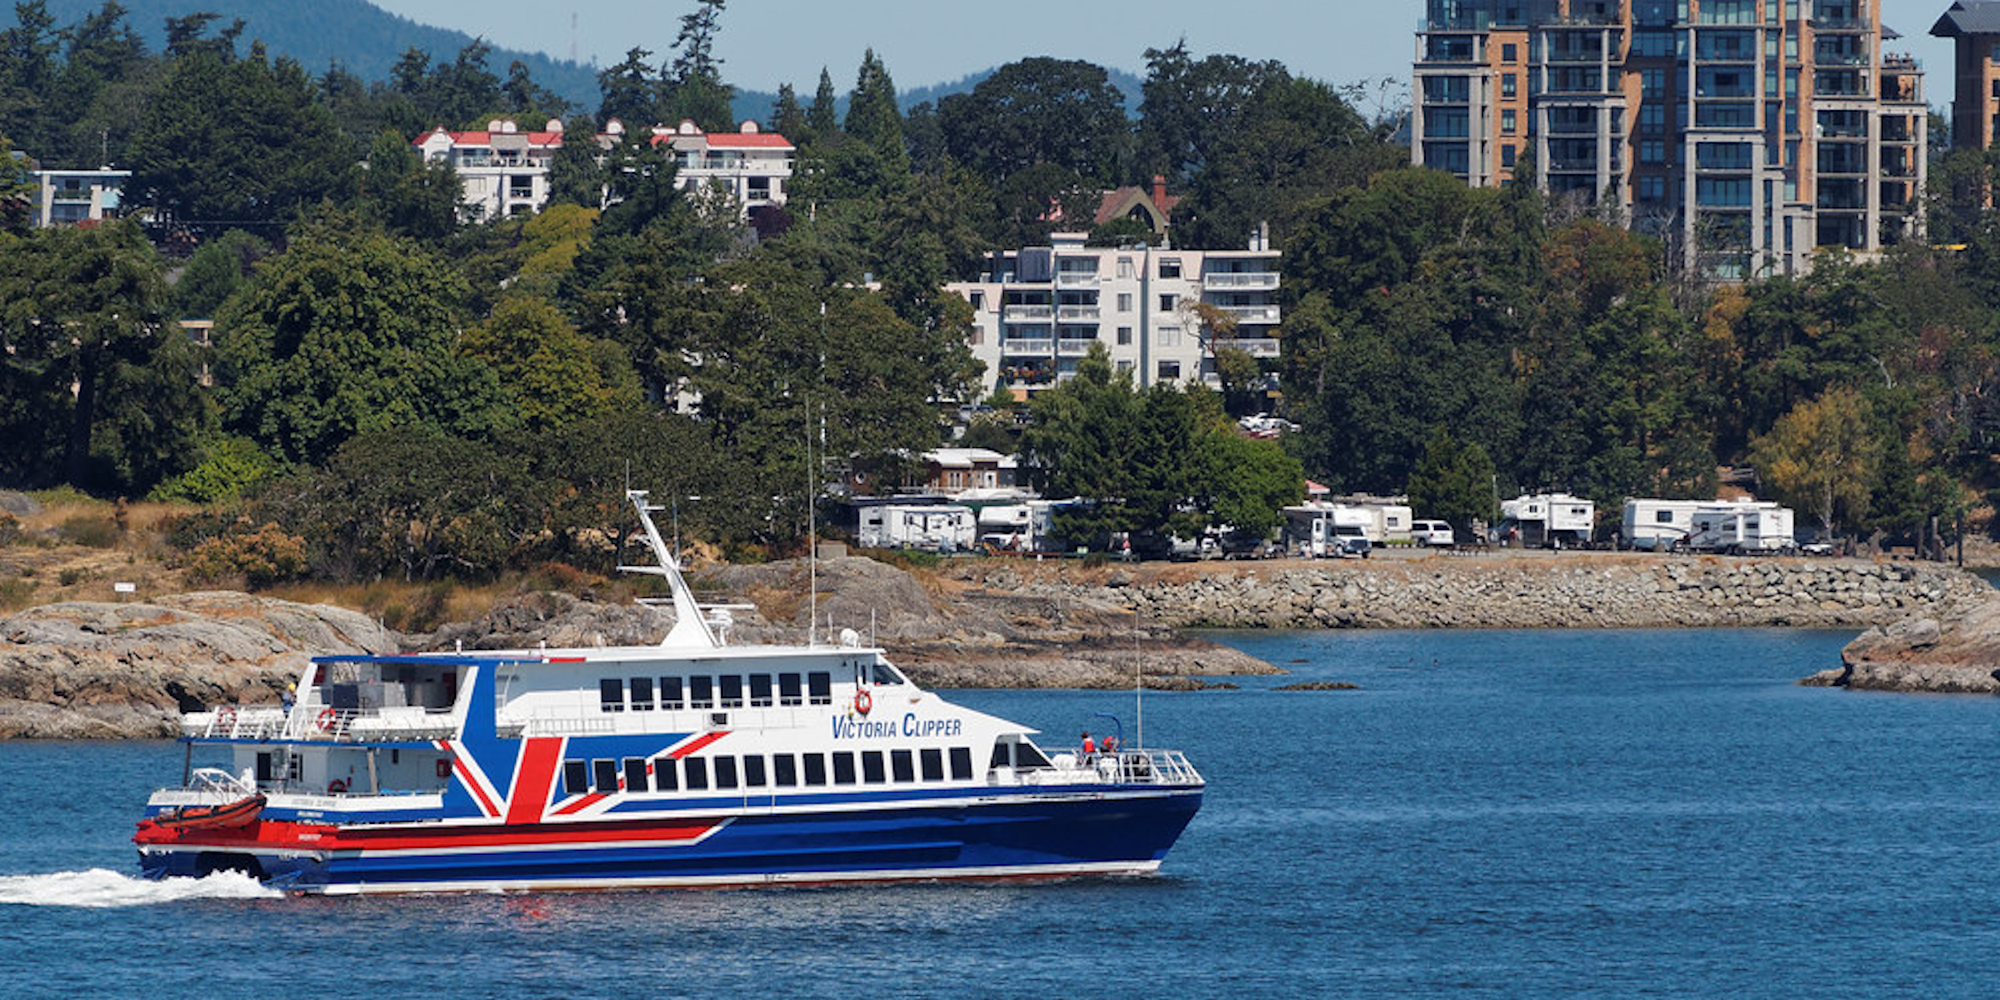 """""""It Was A Very Difficult Decision"""": The Clipper On Why It Sealed Off Victoria's Link to Seattle"""